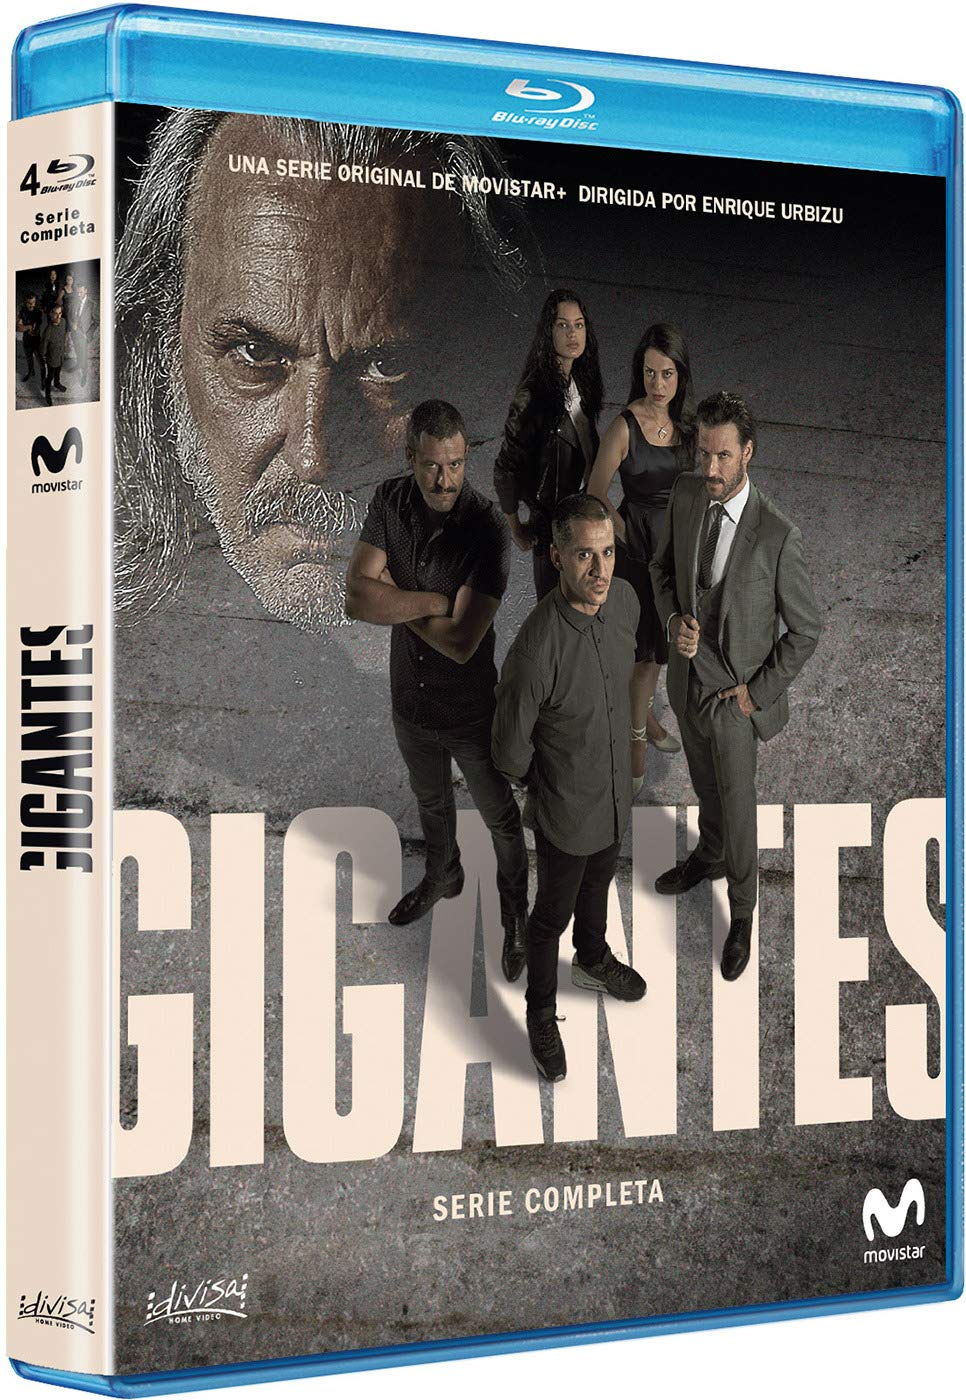 Gigantes - serie completa - BD [Blu-ray]